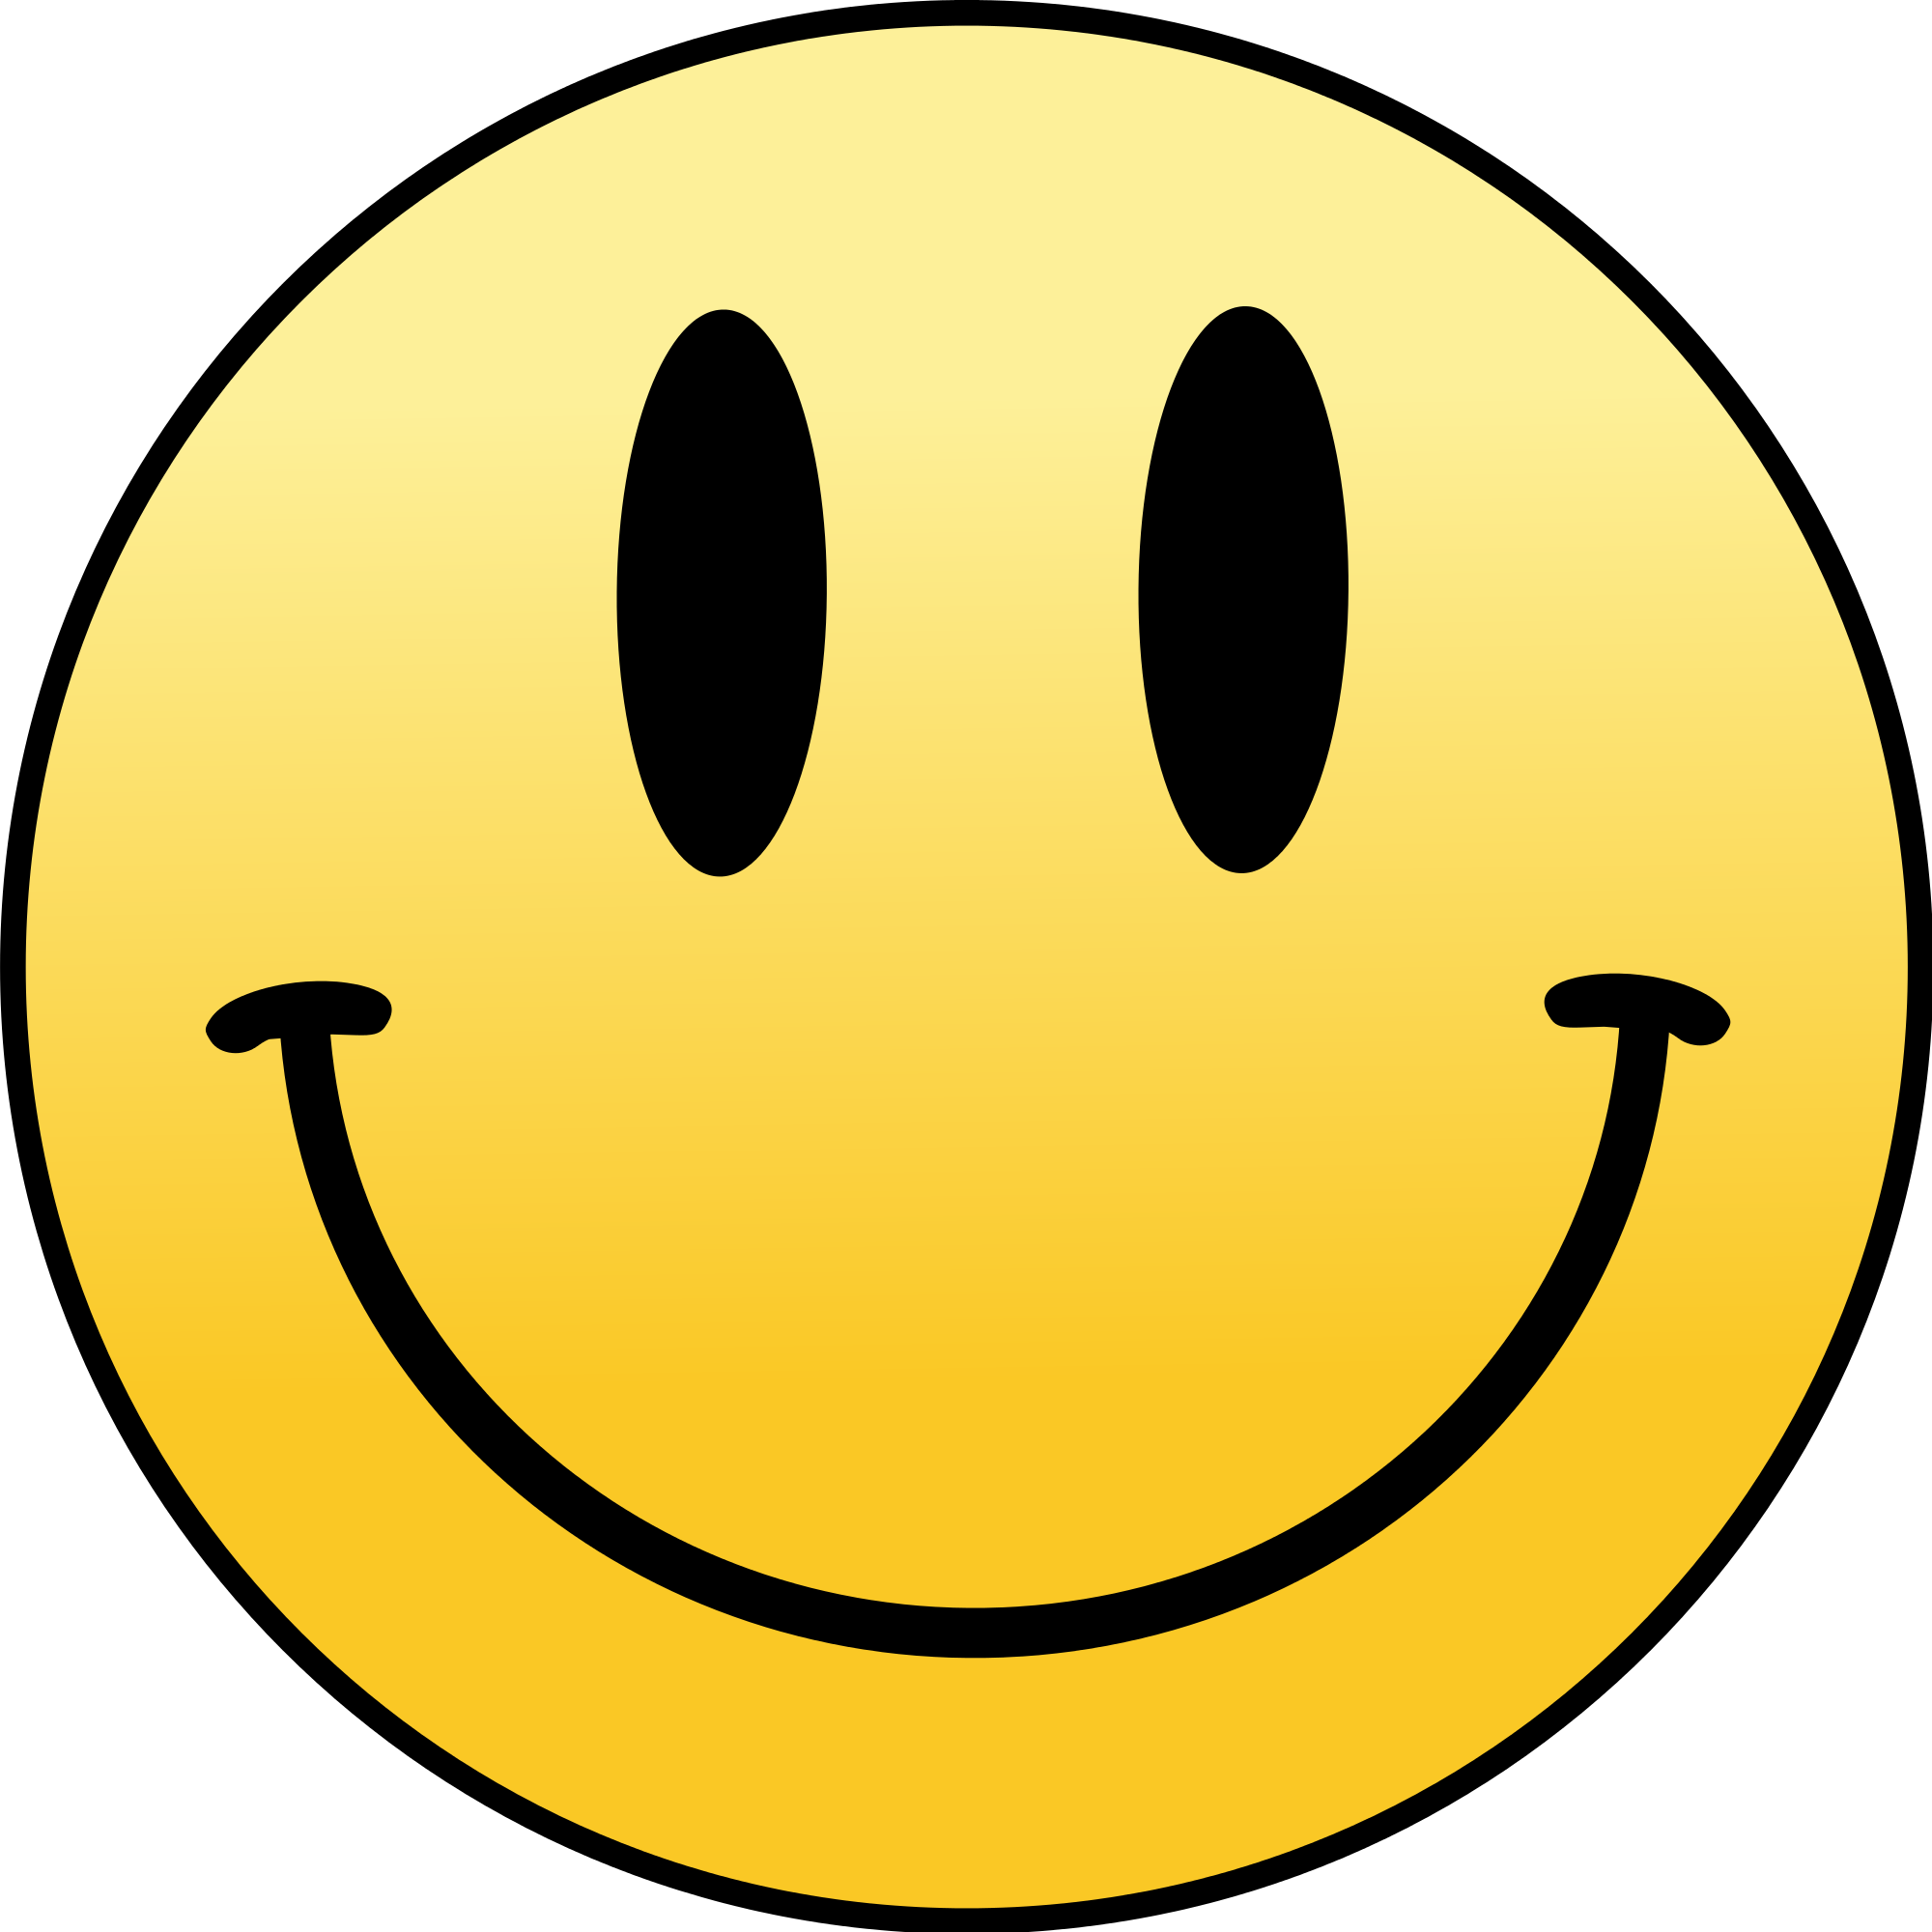 white smiley face png 5